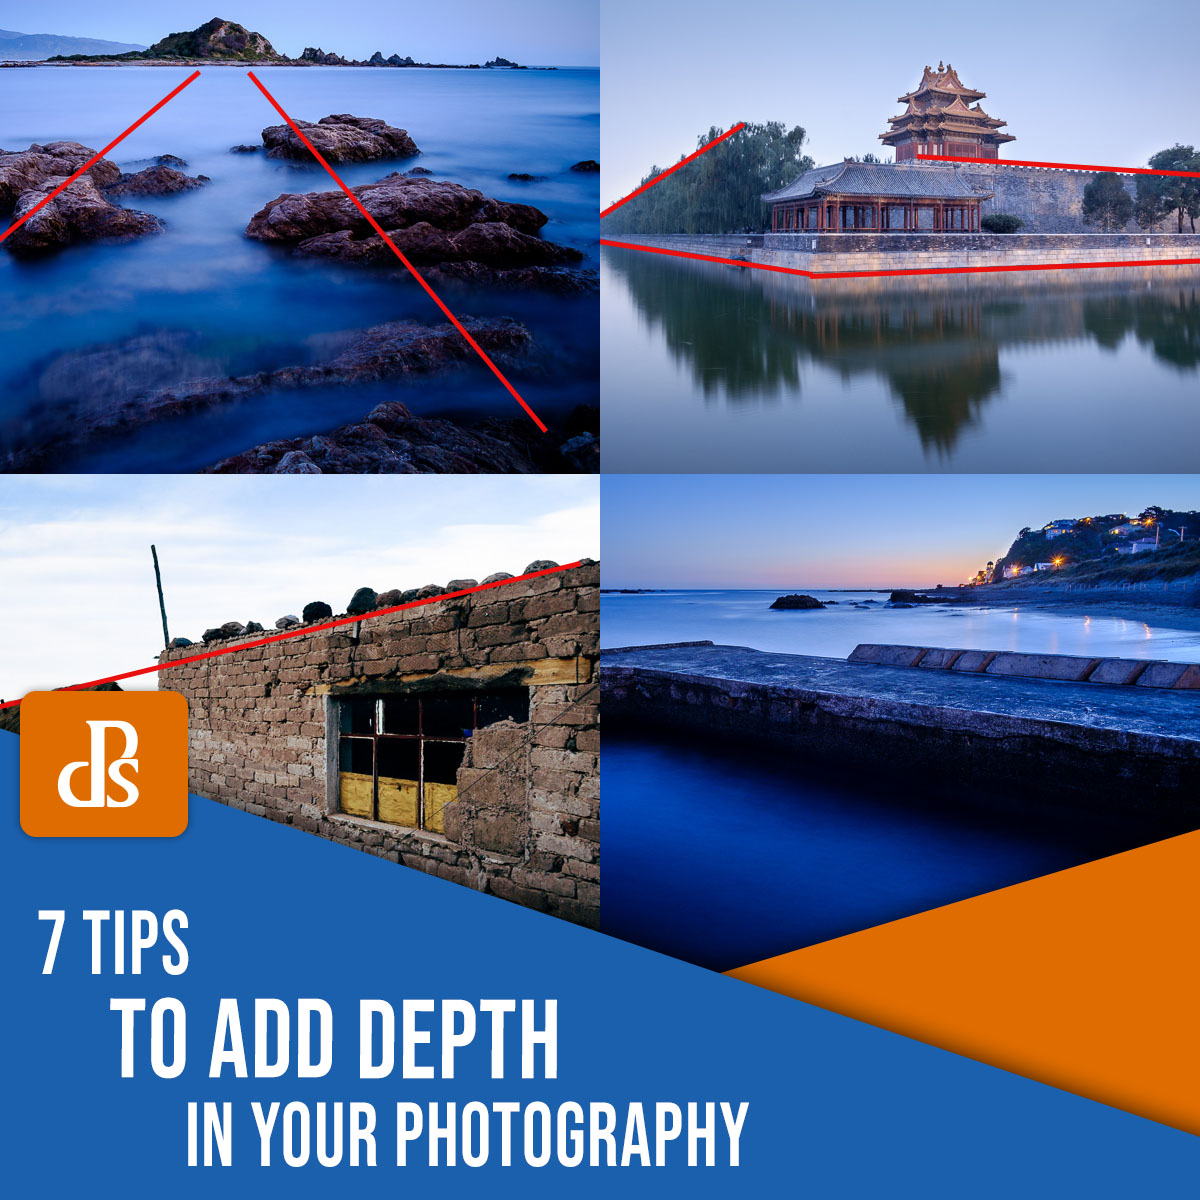 tips to add depth in your photography